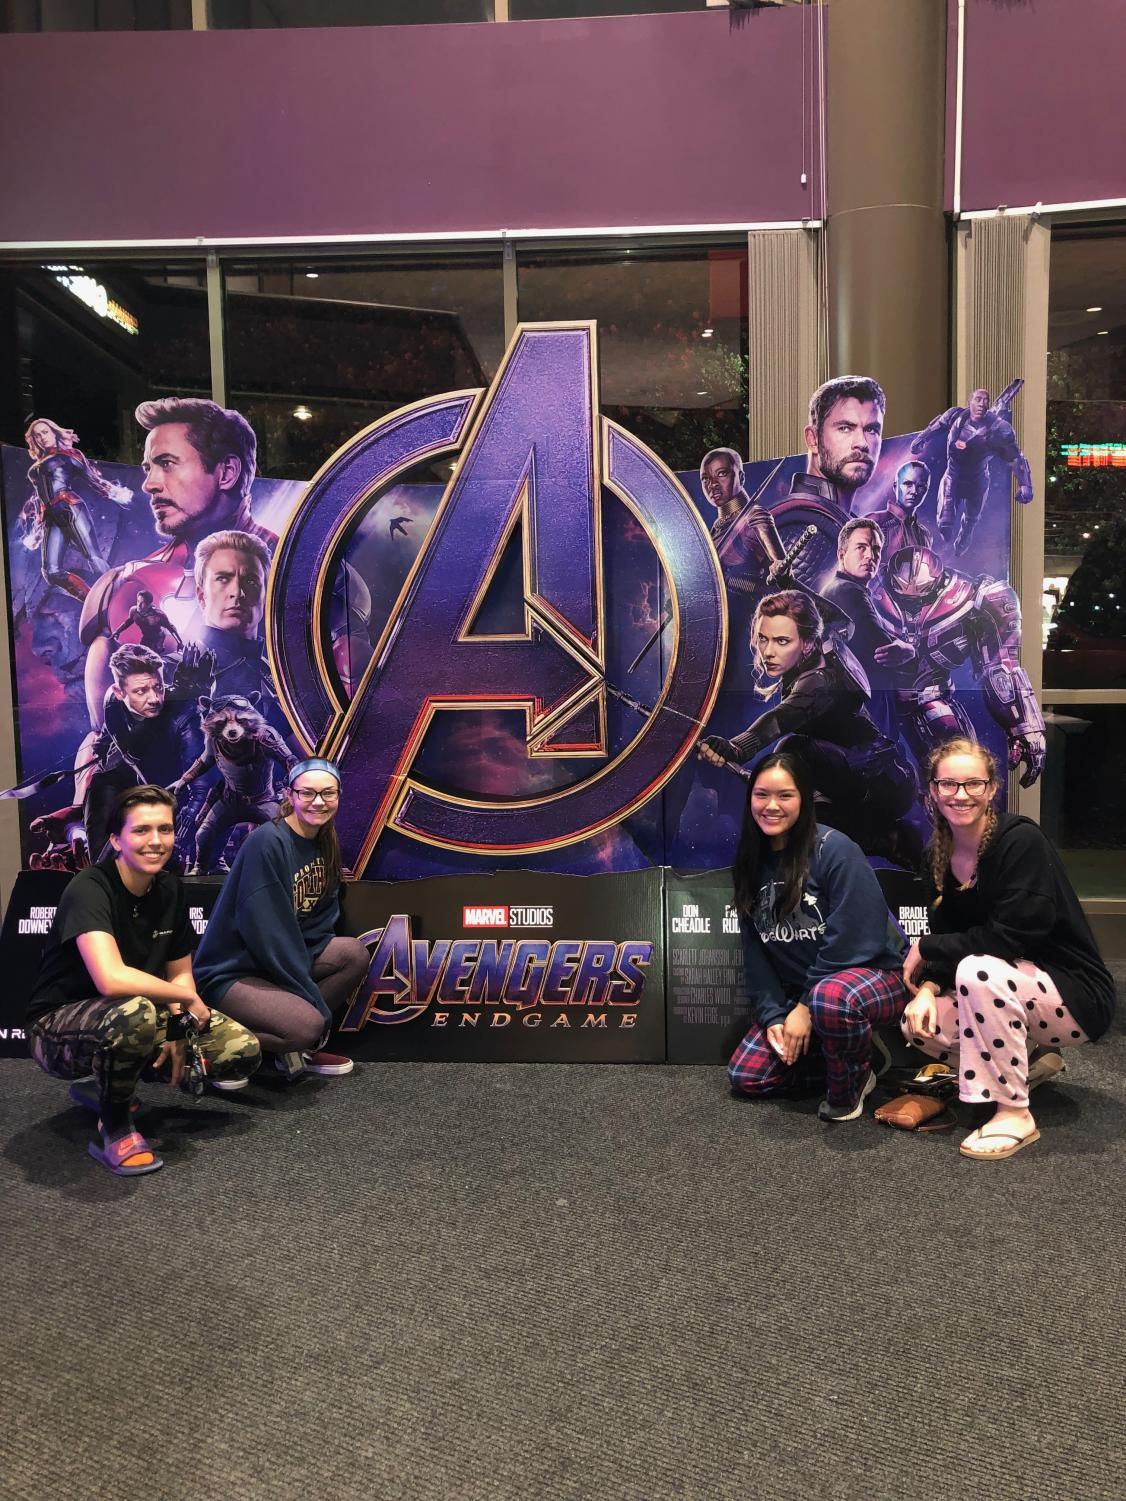 Female students Maria Vaaler (left), Ada Duncan (left-center), Nikki Chang (right-center) and Katie Bullock (right) pose in front of an Avengers: Endgame cutout prior to watching the movie.